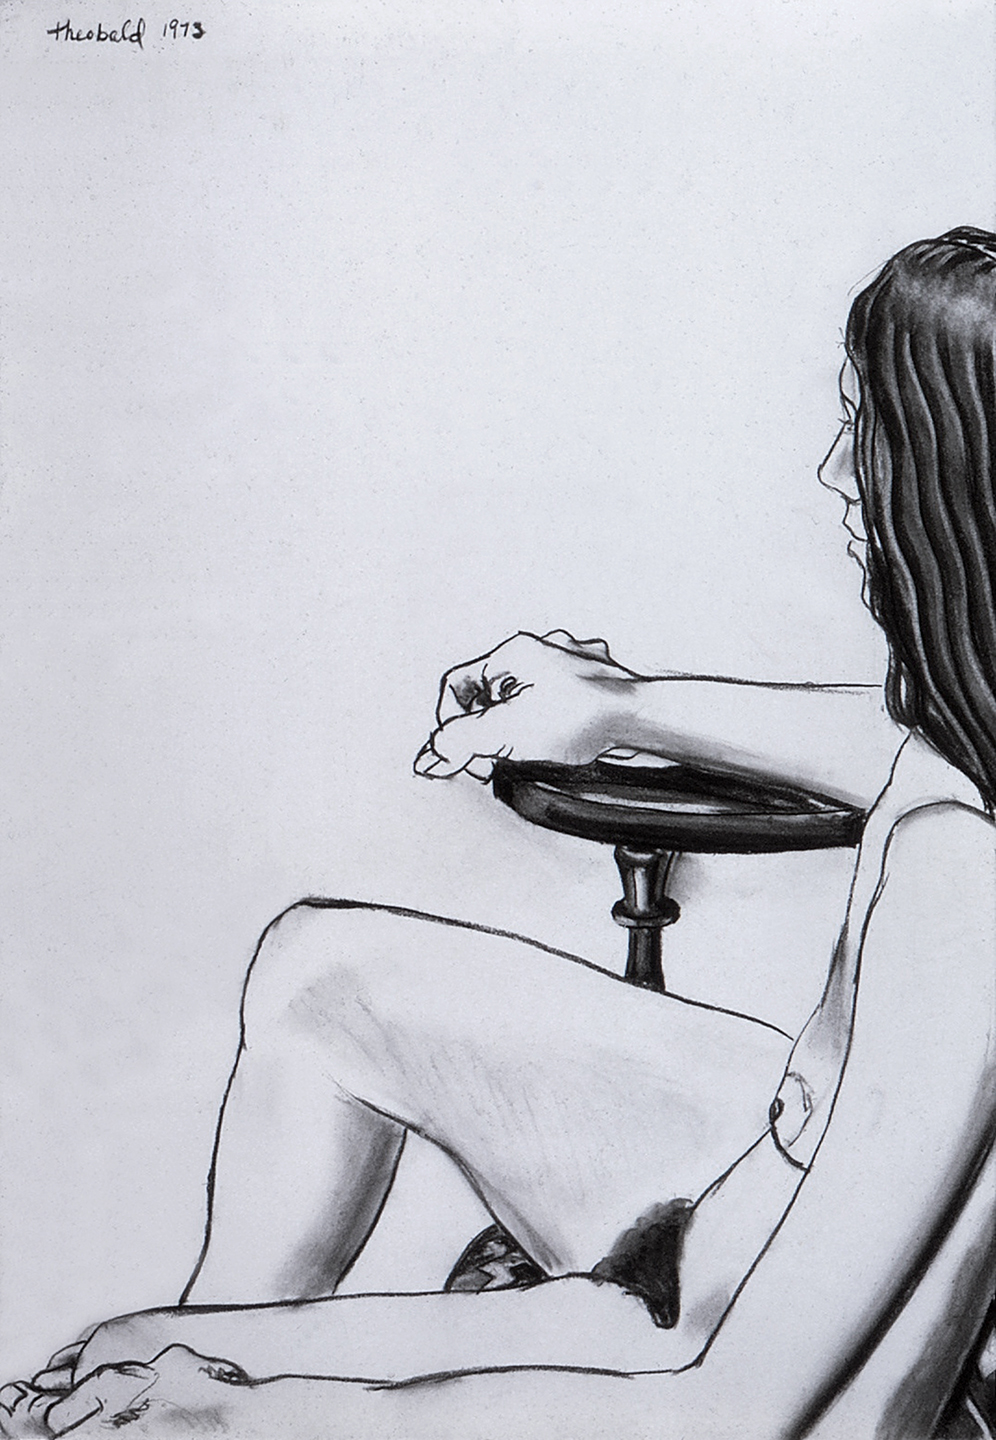 Nude in Chair, 1973  Charcoal on Rives